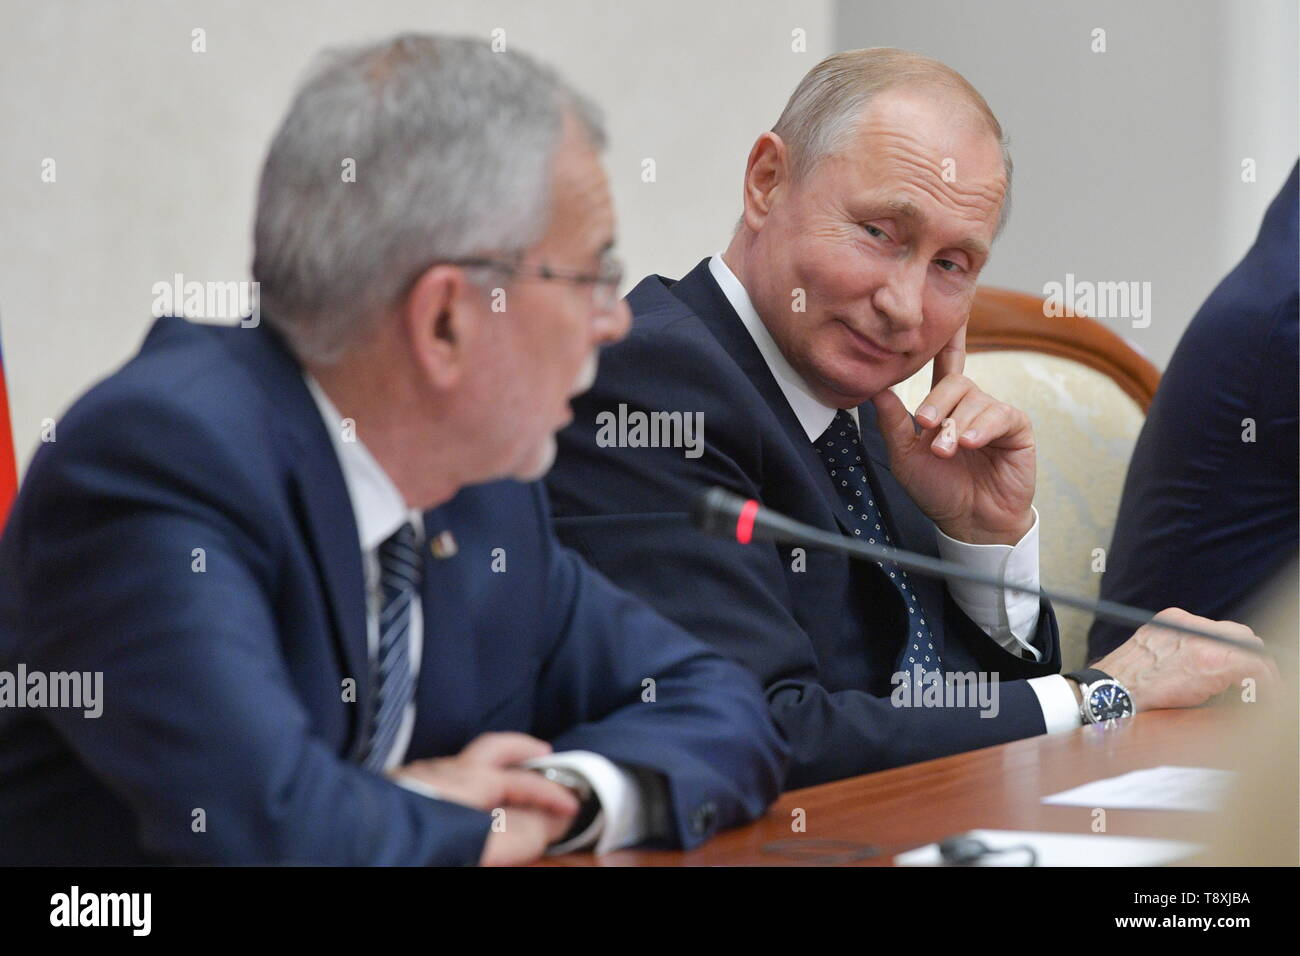 Sochi, Russia. 15th May, 2019. SOCHI, RUSSIA - MAY 15, 2019: Austria's President Alexander Van der Bellen (L) and Russia's President Vladimir Putin attend the inaugural meeting of the Sochi Dialogue Forum. Alexei Druzhinin/Russian Presidential Press and Information Office/TASS Credit: ITAR-TASS News Agency/Alamy Live News - Stock Image